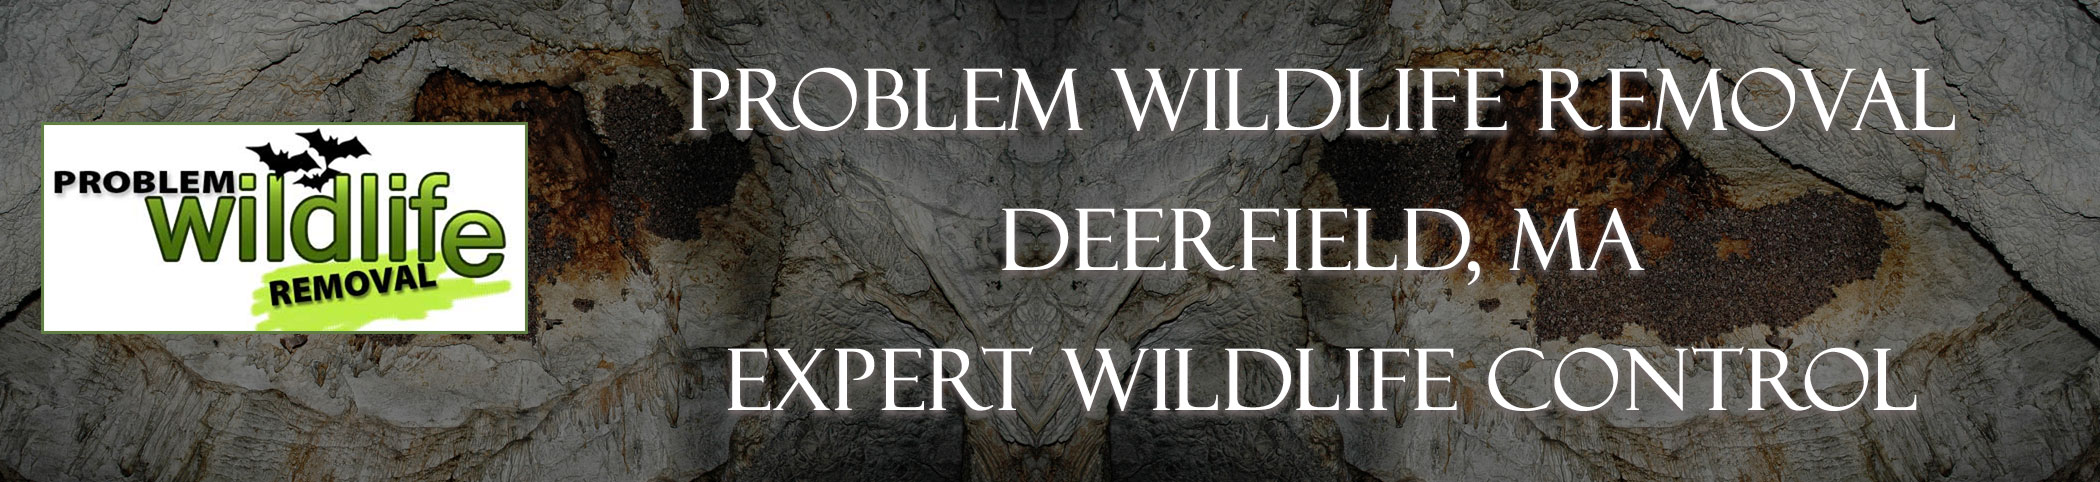 bat removal and bat exclusion by problem wildlife removal Deerfield ma